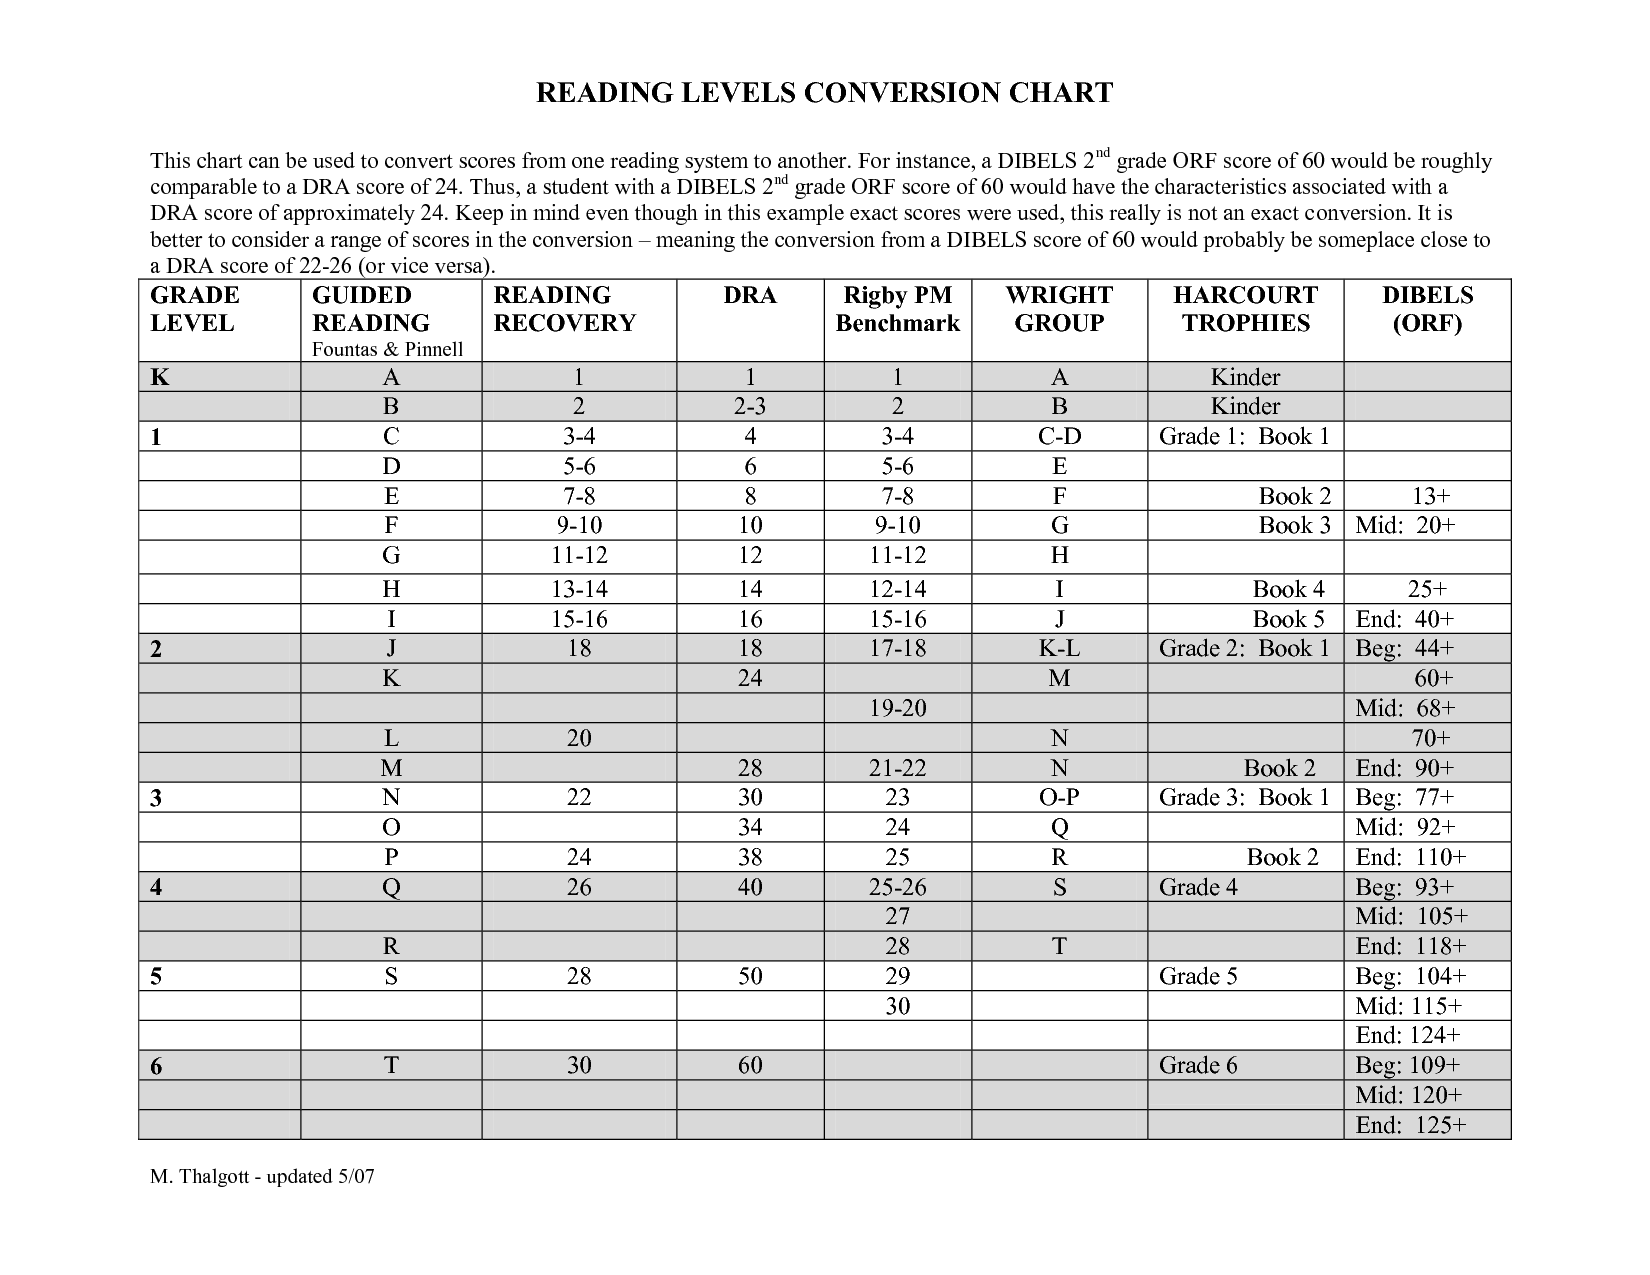 Dibbles conversion chart fabulous first grade finds pinterest dibbles conversion chart school resourcesguided readingassessmentchartformative assessment geenschuldenfo Image collections